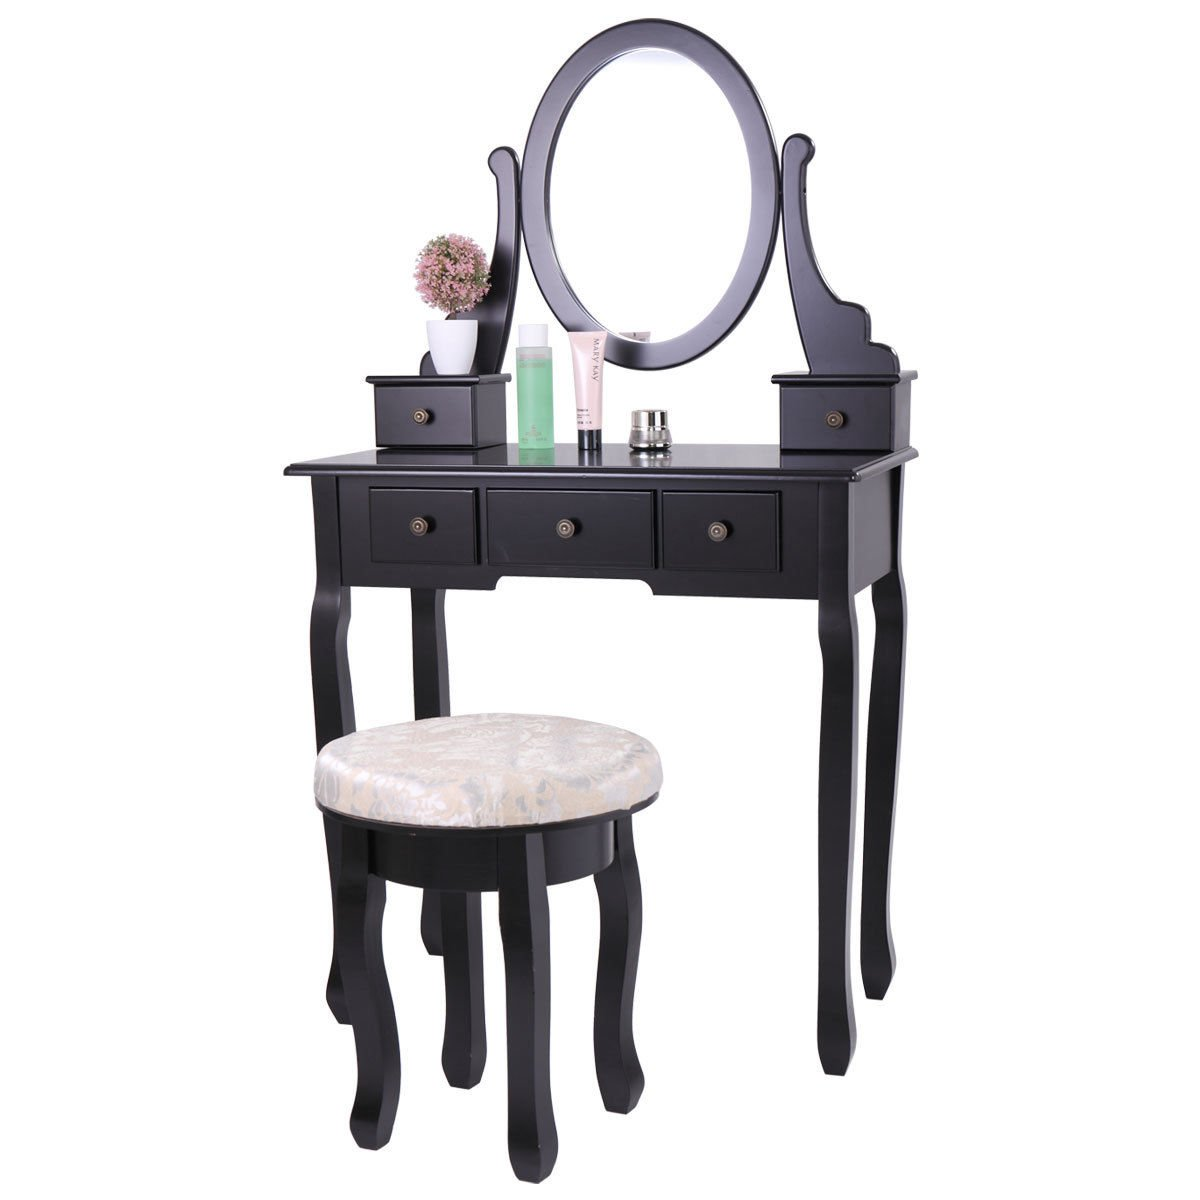 Amazon com eosphor us makeup vanity desk mirror dressing table with stool bedroom jewelry organizer kitchen dining